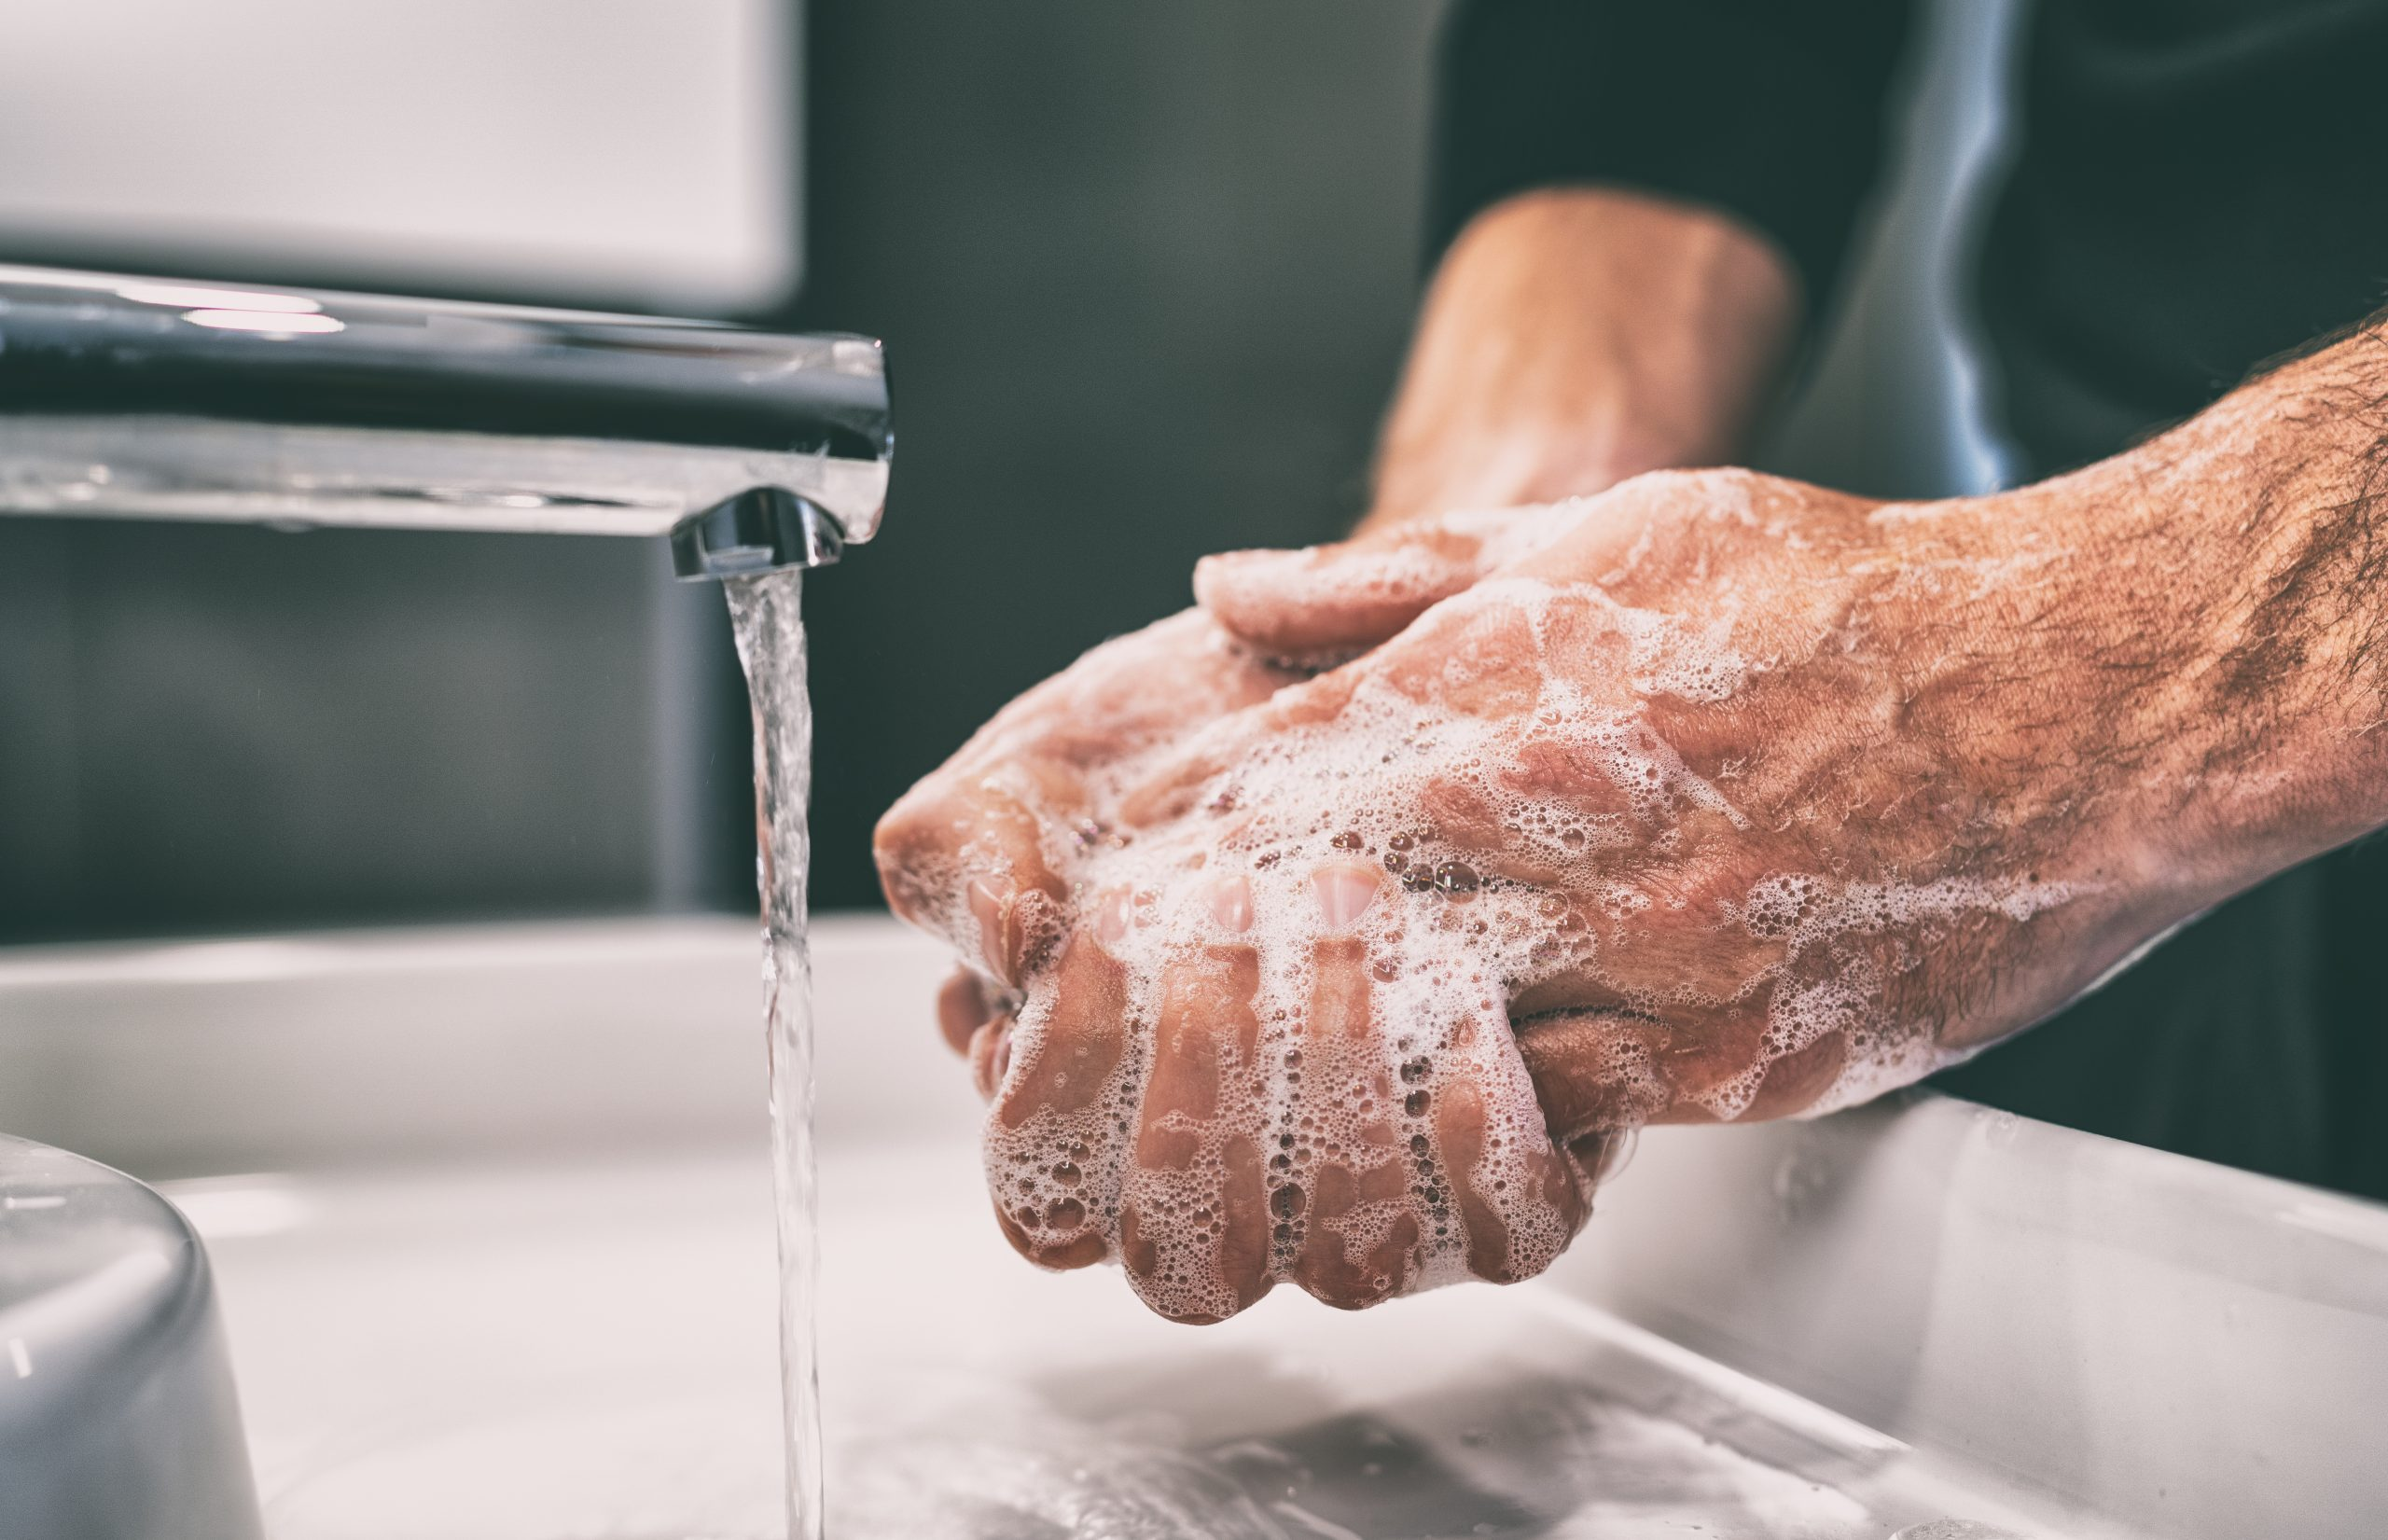 Photo of a person washing their hands.